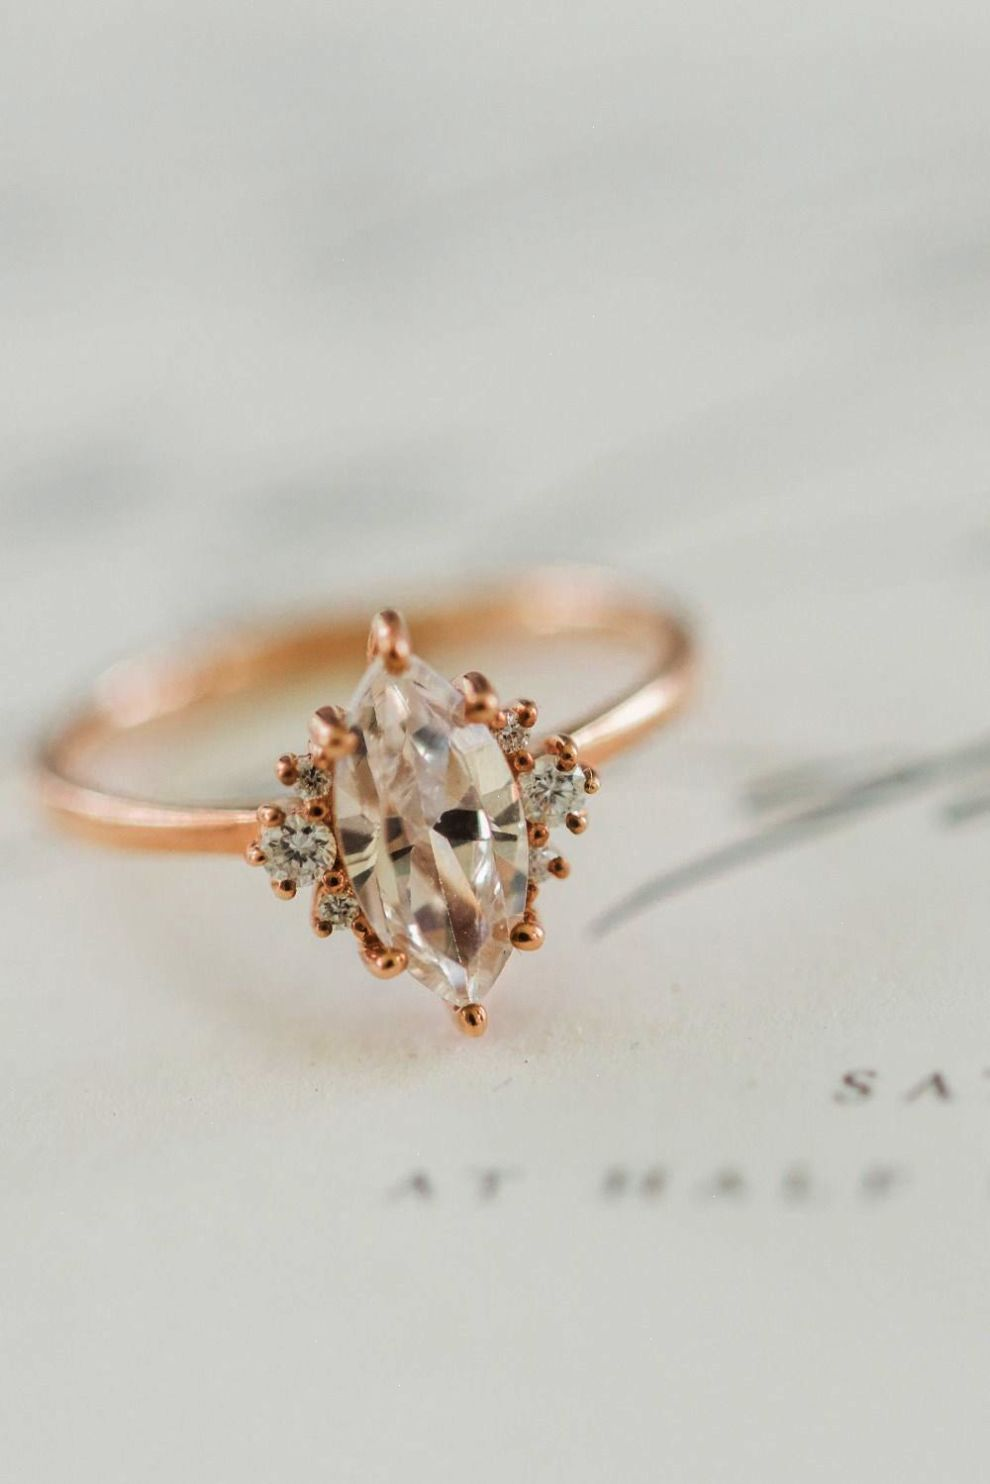 Interesting vintage rose gold engagement rings canada i want